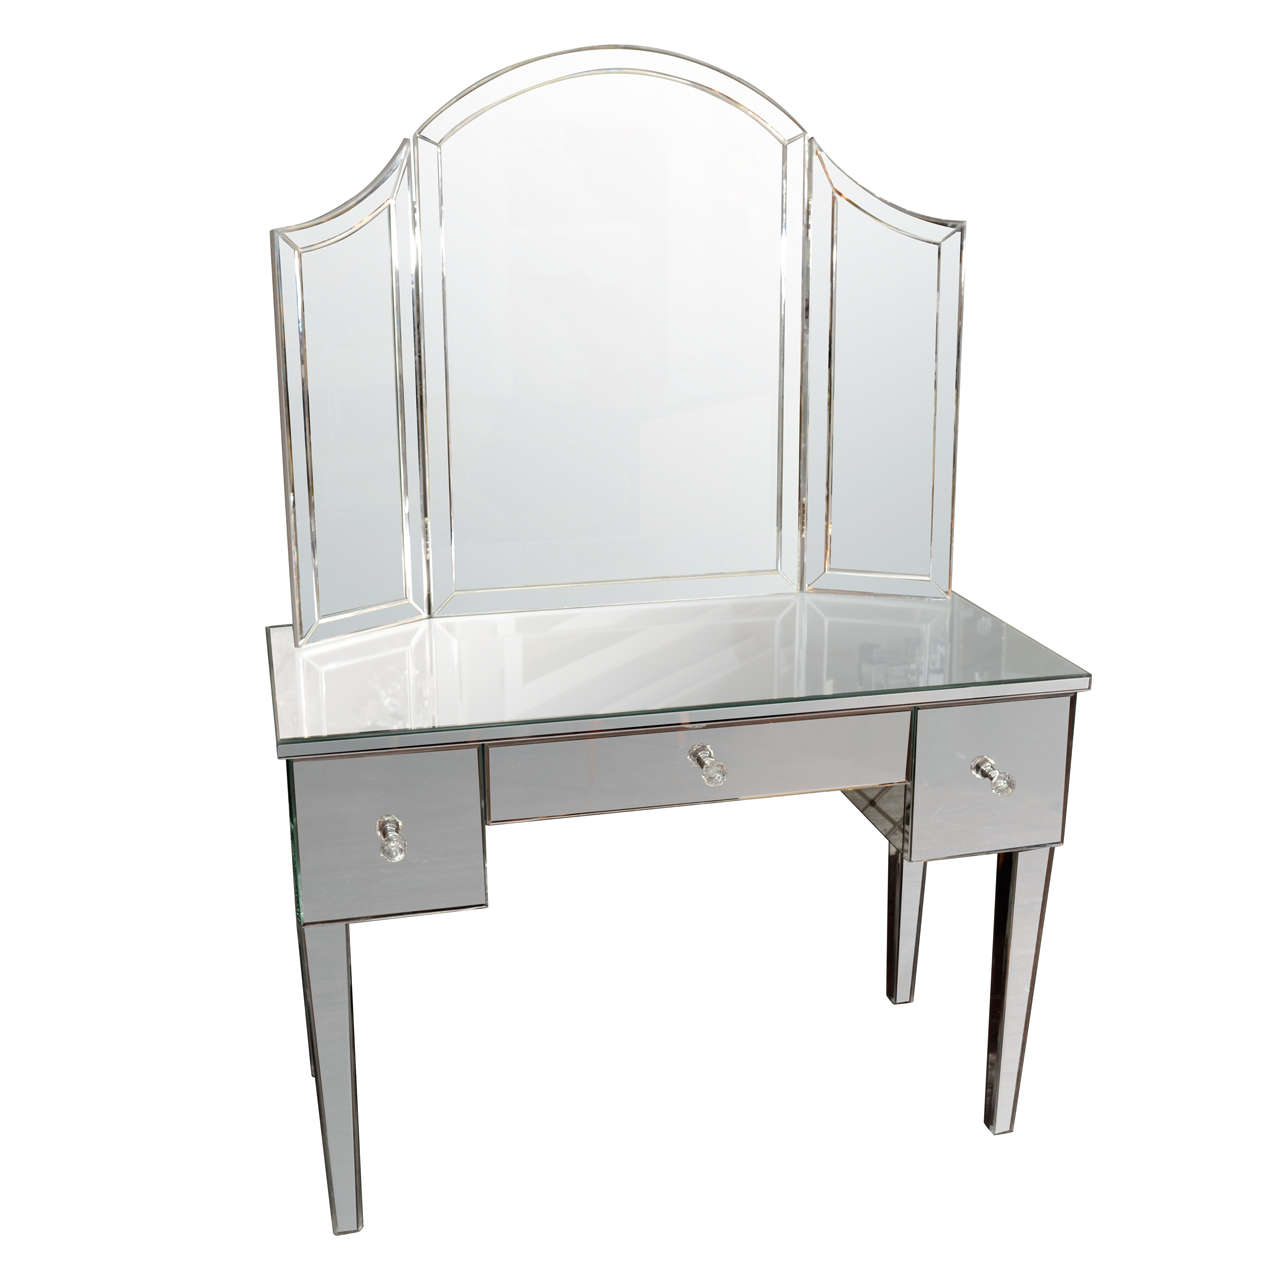 Custom Mirrored Vanity with Tryptic Mirror